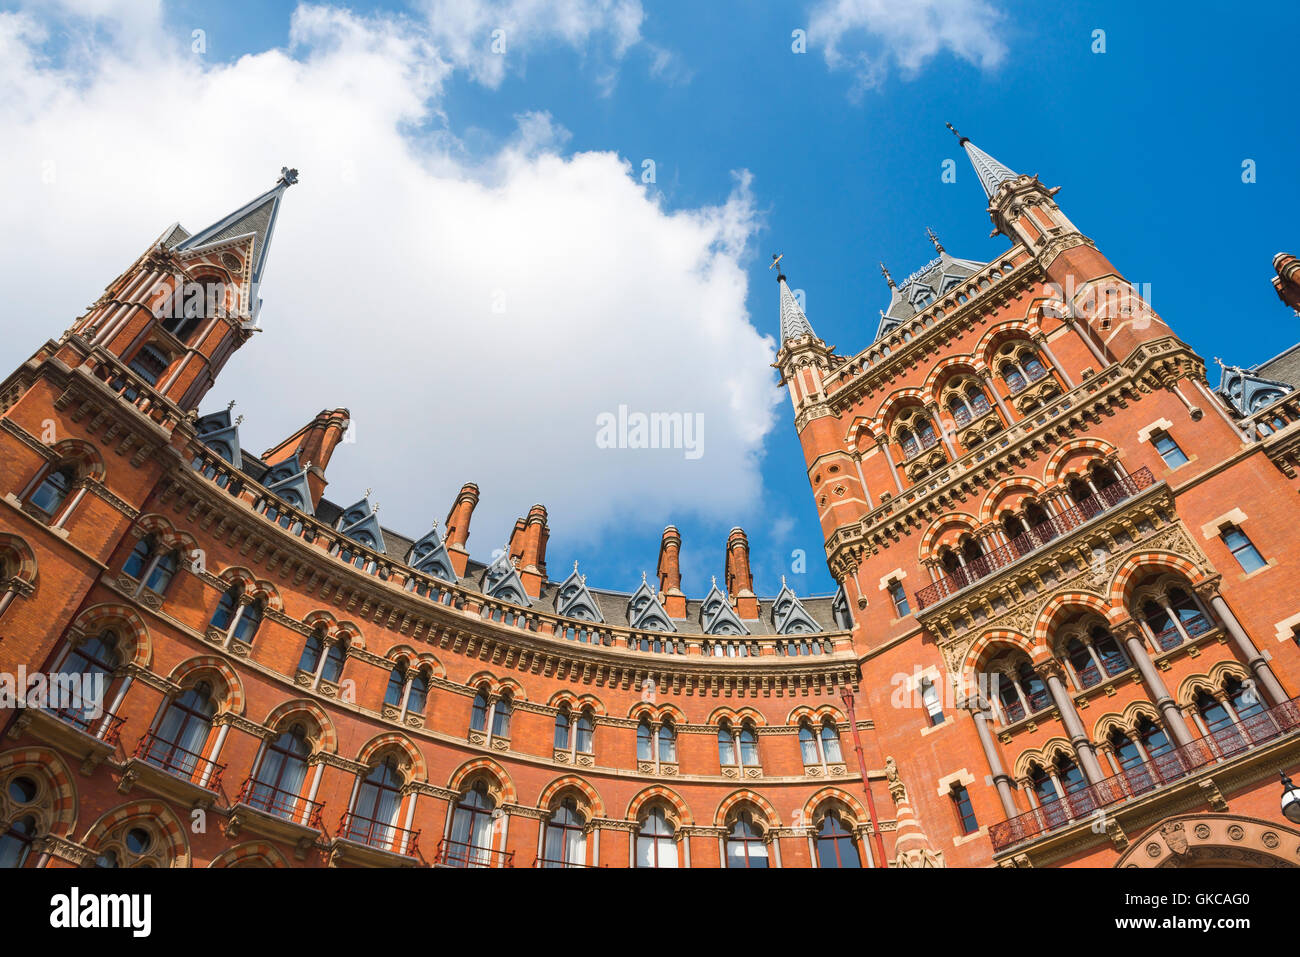 Victorian architecture, London, detail of the Victorian Gothic Revival style St Pancras Hotel at King's Cross, - Stock Image